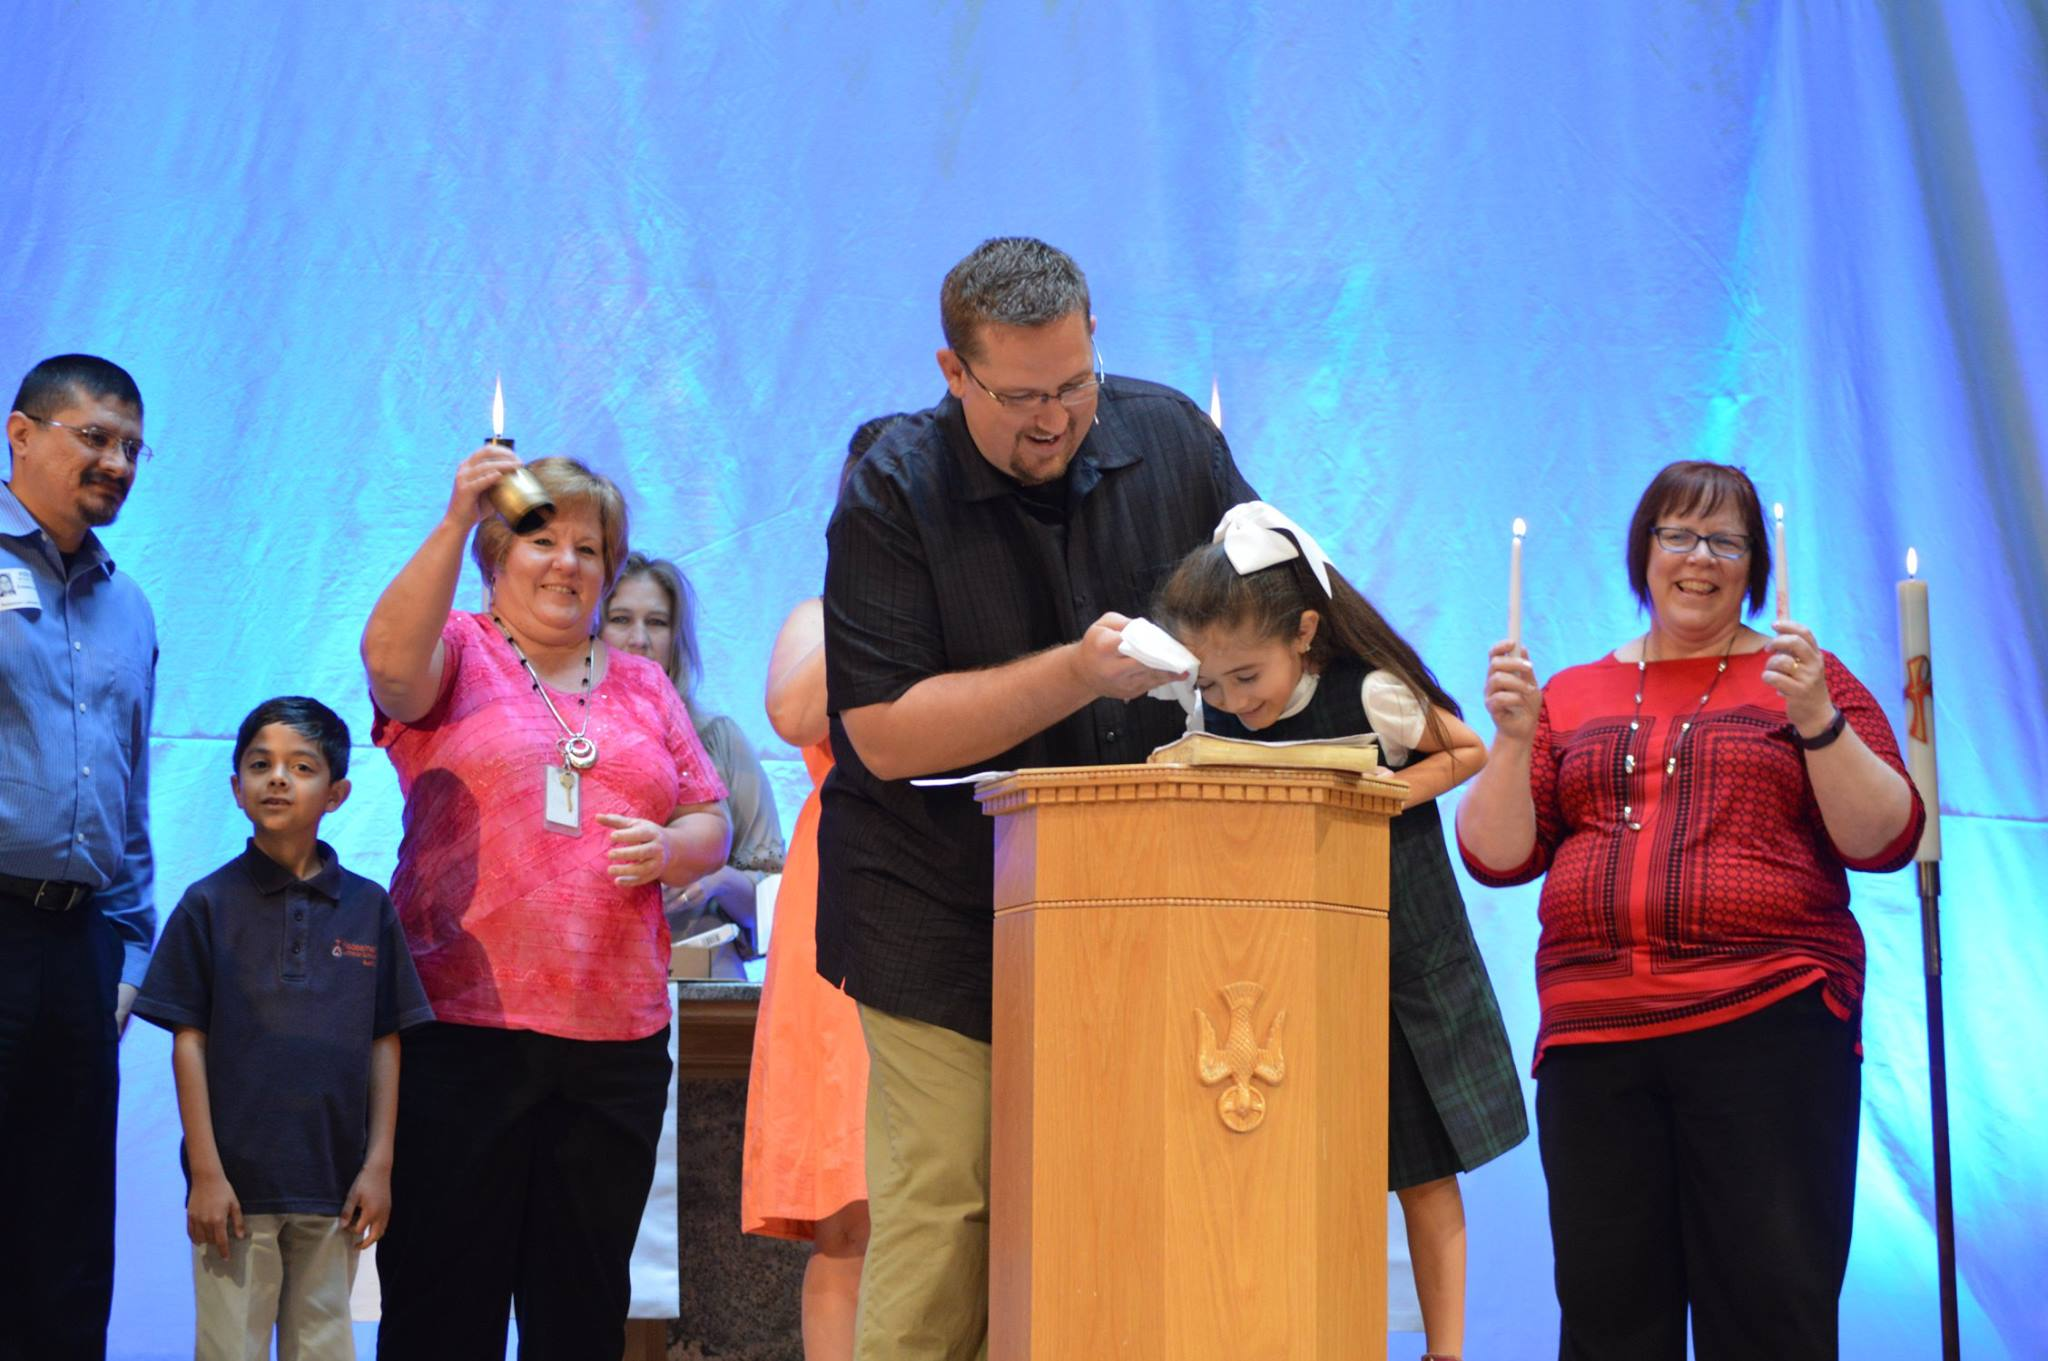 Baptism - Baptism is one of the most beautiful gifts God gives a person. It's where God adopts you into His family and gives you all the benefits of being a son or daughter.In Mark 16:16, Jesus taught that whoever believes in Him and are baptized is saved. The power of baptism is in the work of God, not us. To schedule a baptism, let us know here.